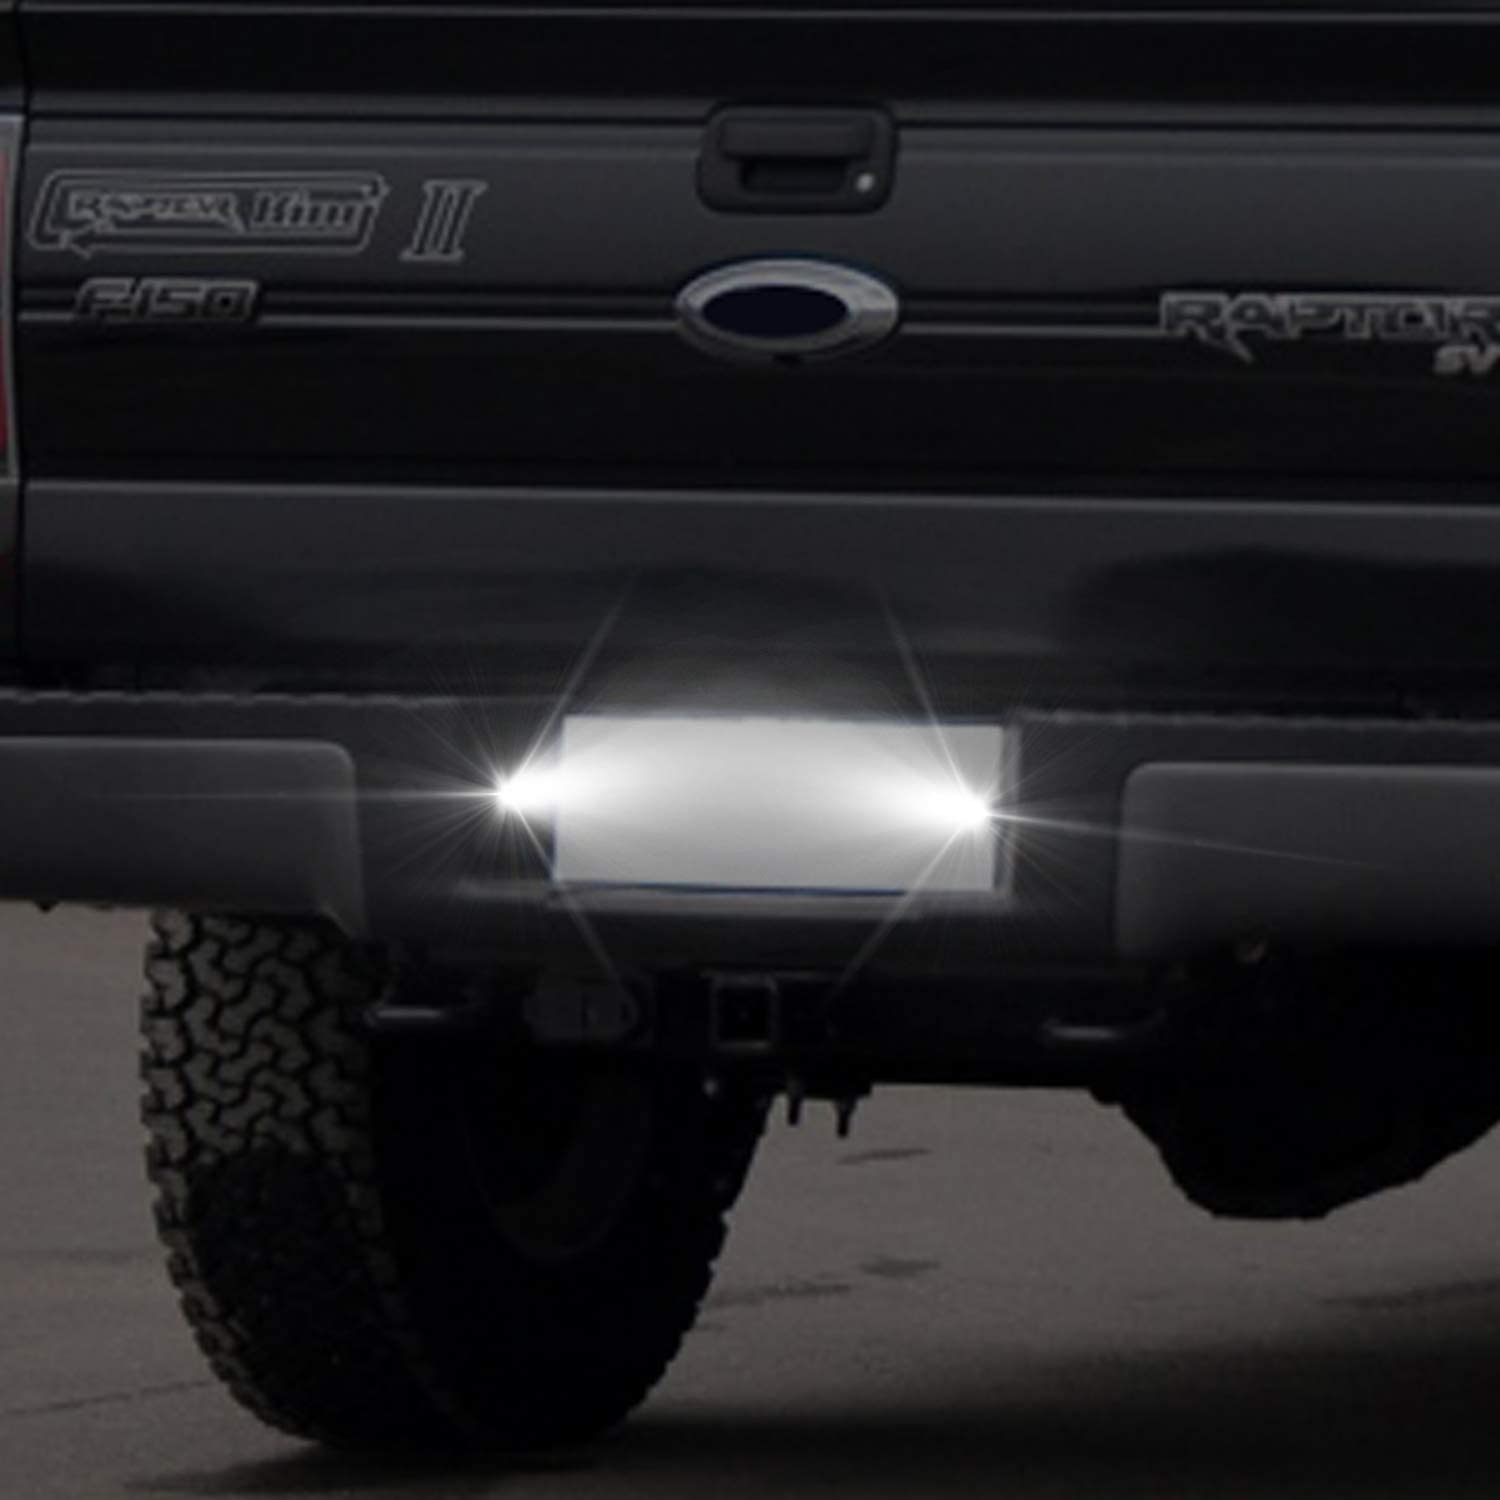 WinPower Led License Plate Frame Lights 18 SMD Error Free for Ford F150 2015-2018